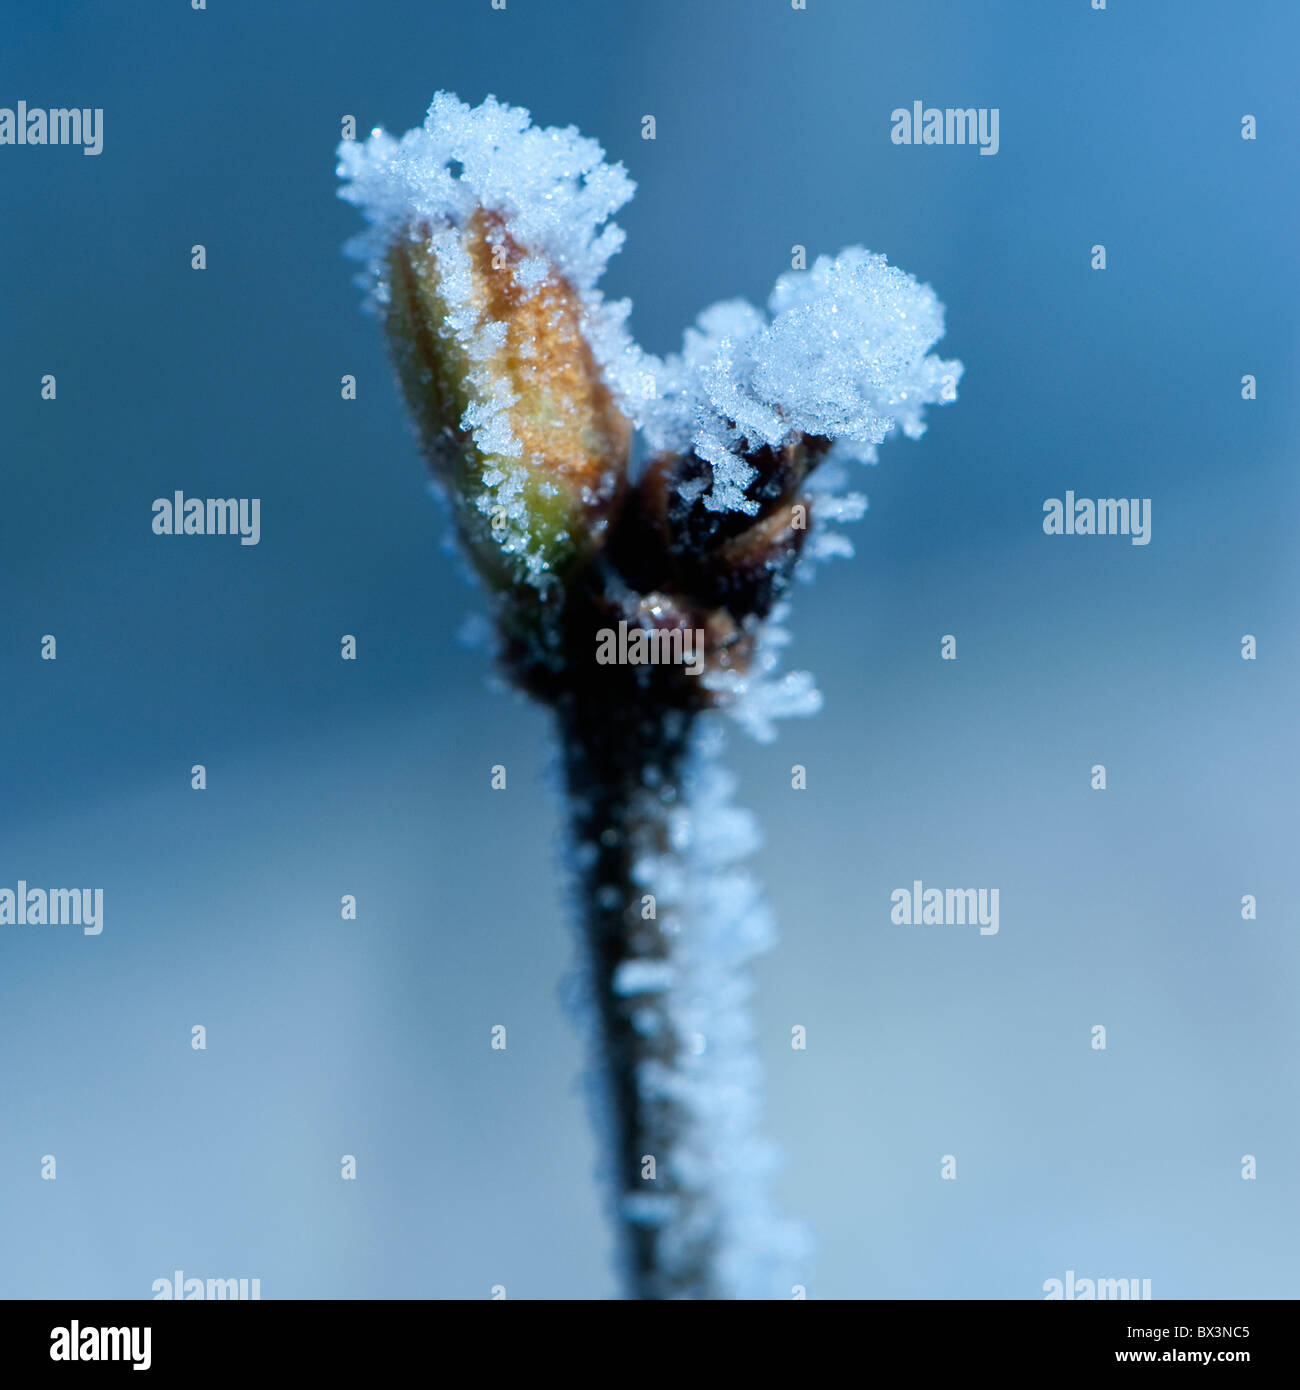 Tree twig branch with bud covered in frost. - Stock Image